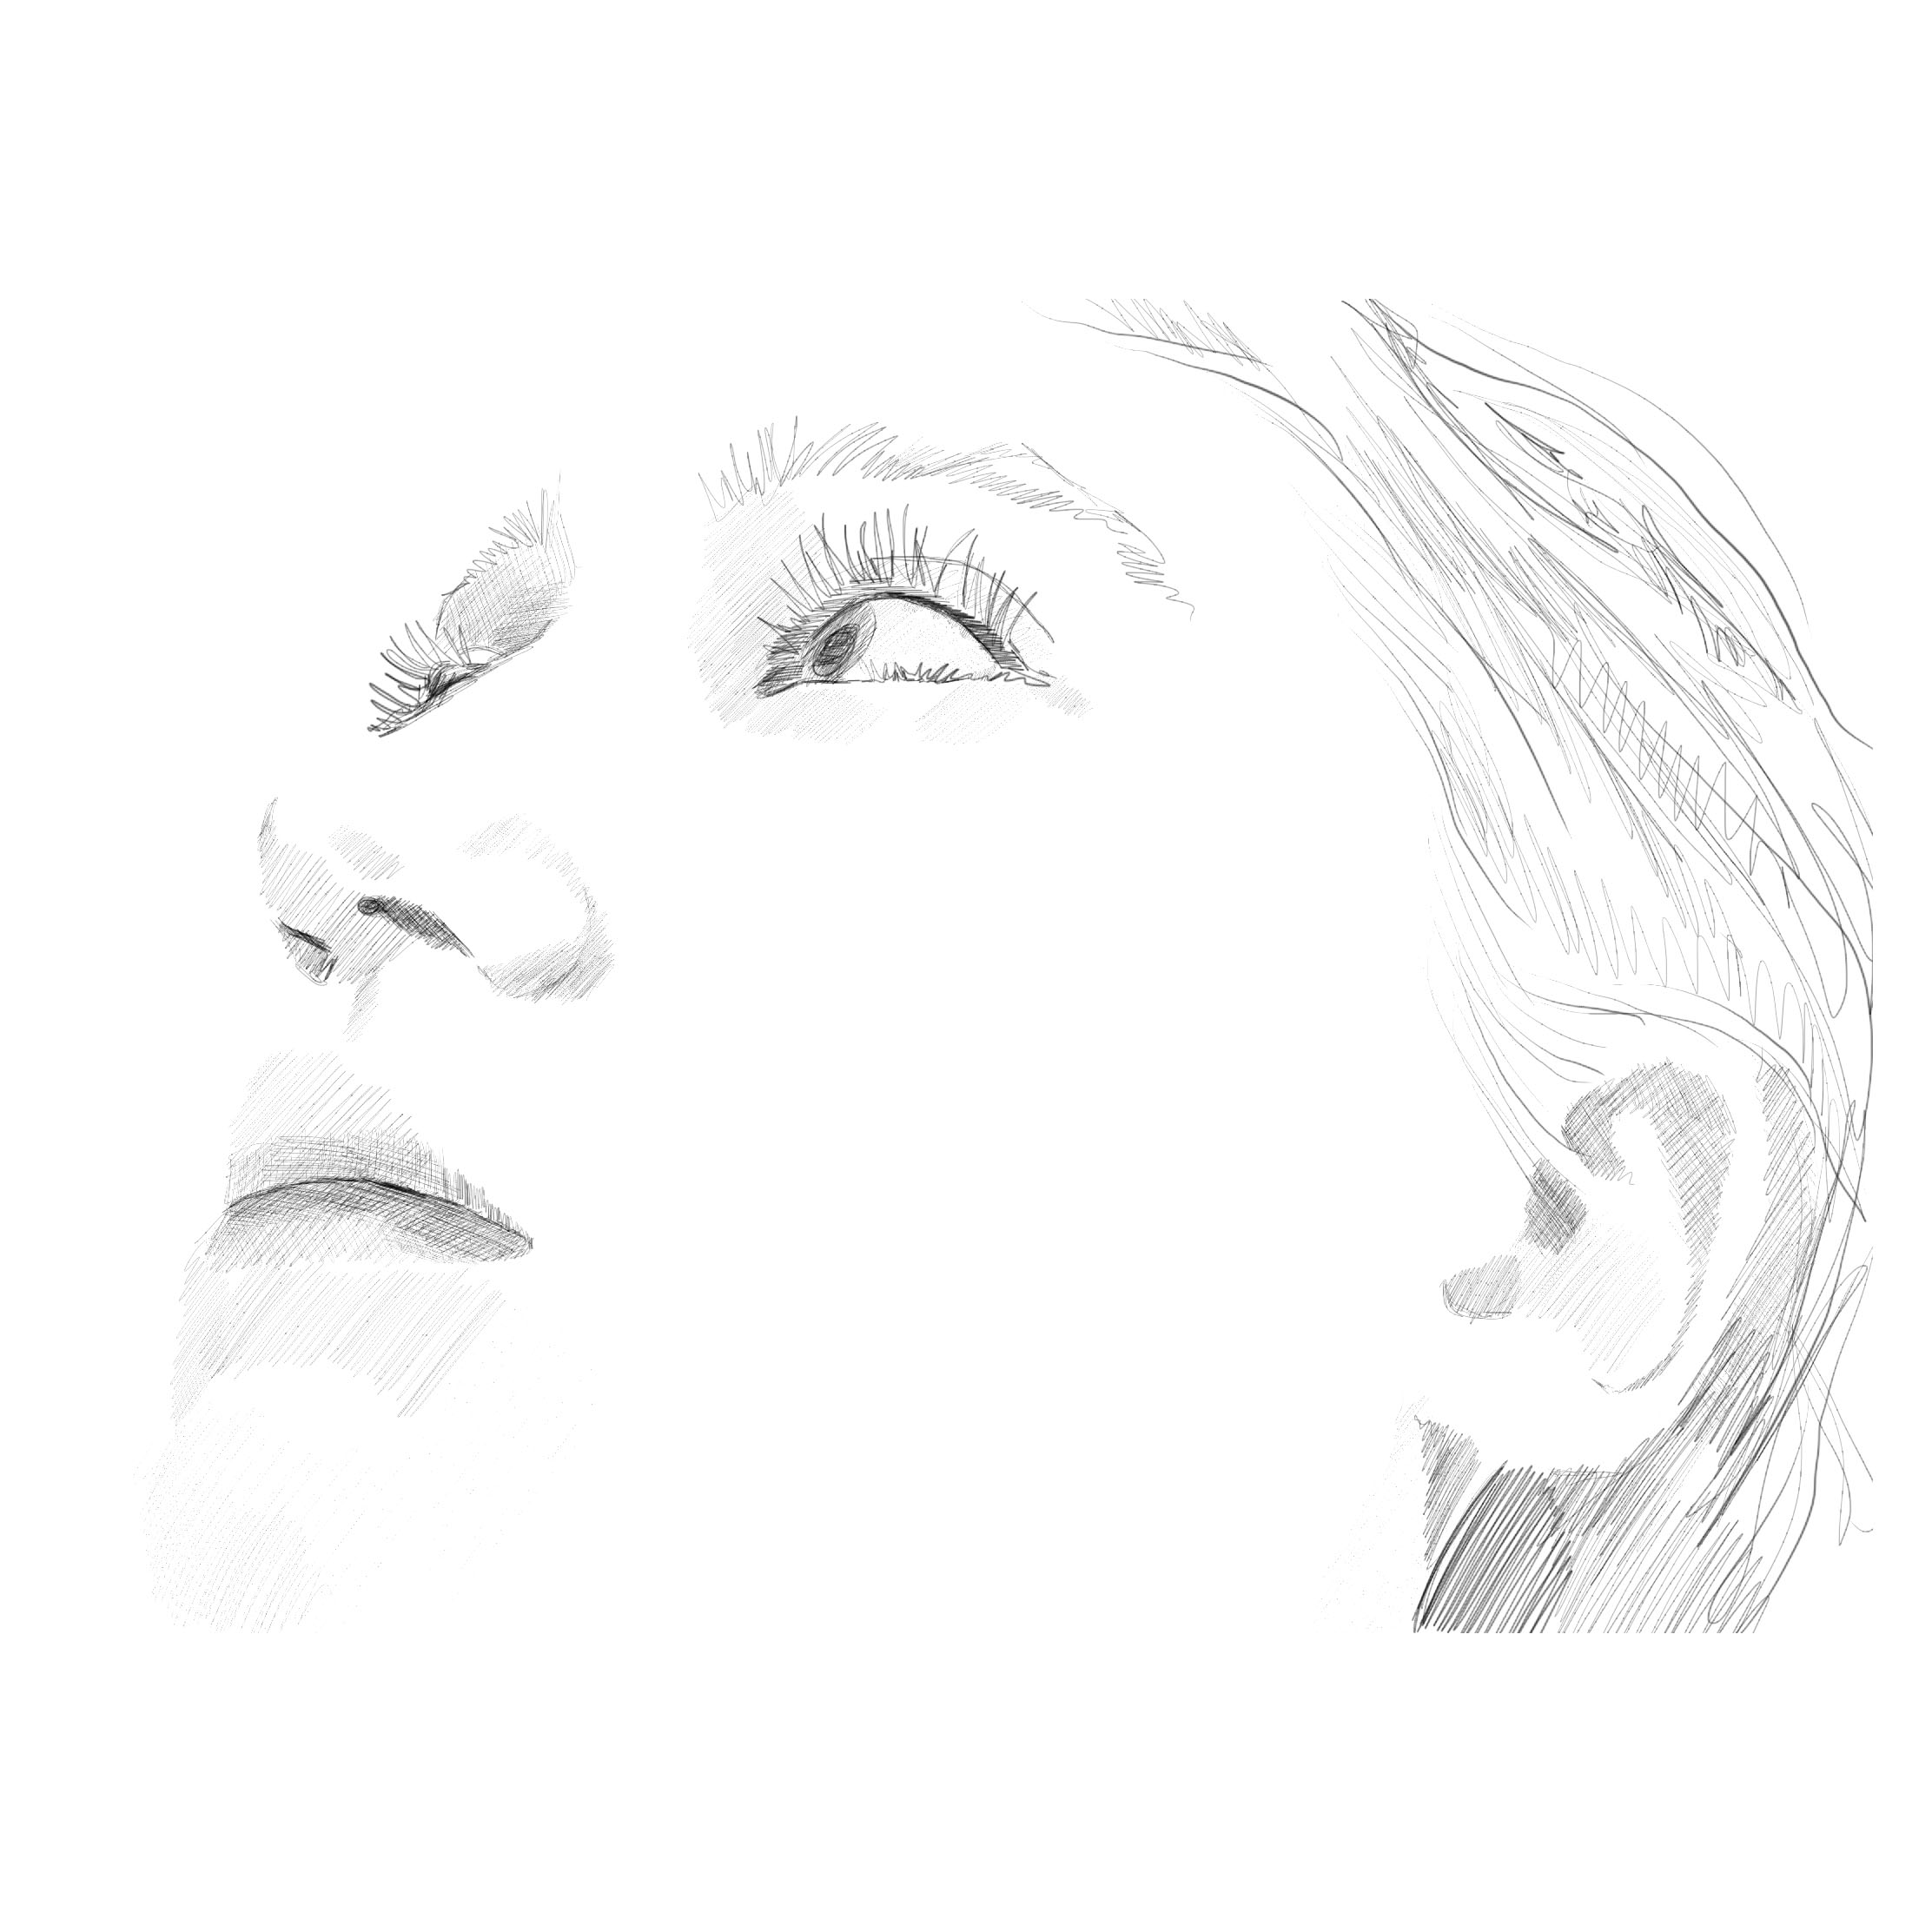 Work-with-williams-drawing2